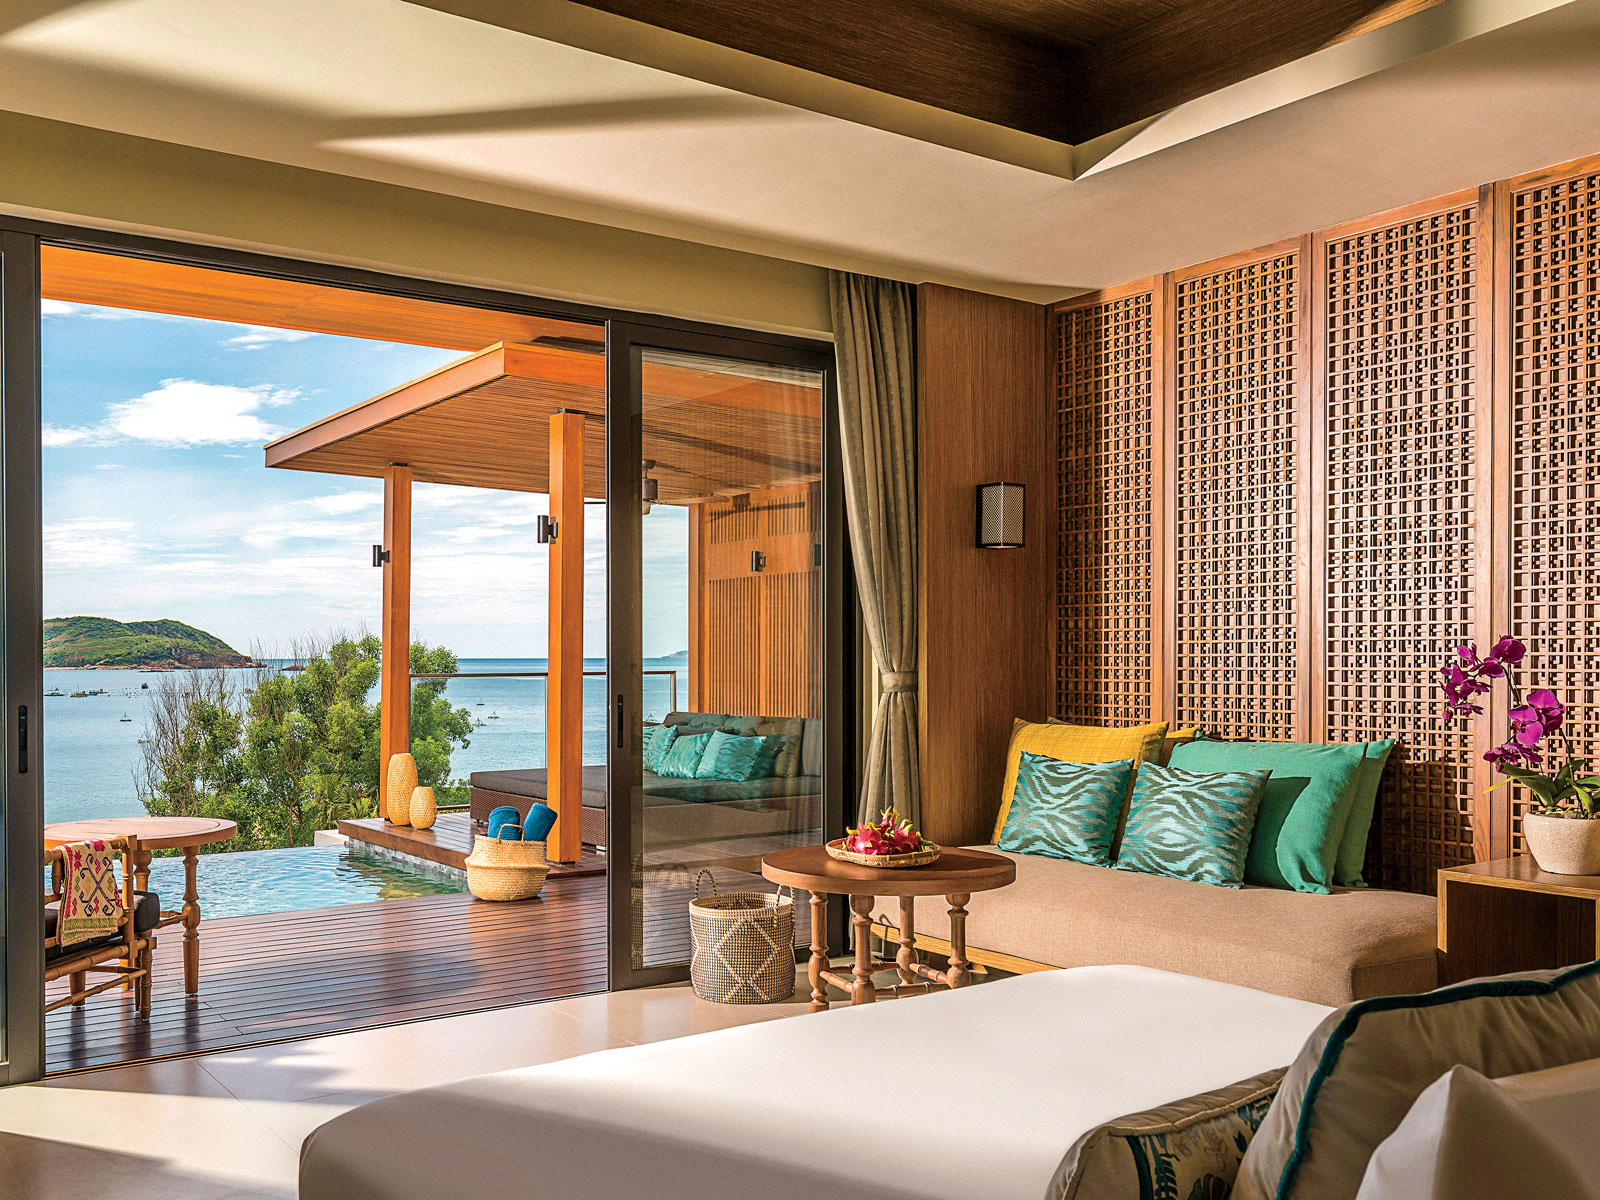 Anantara Hotels Resorts and Spas